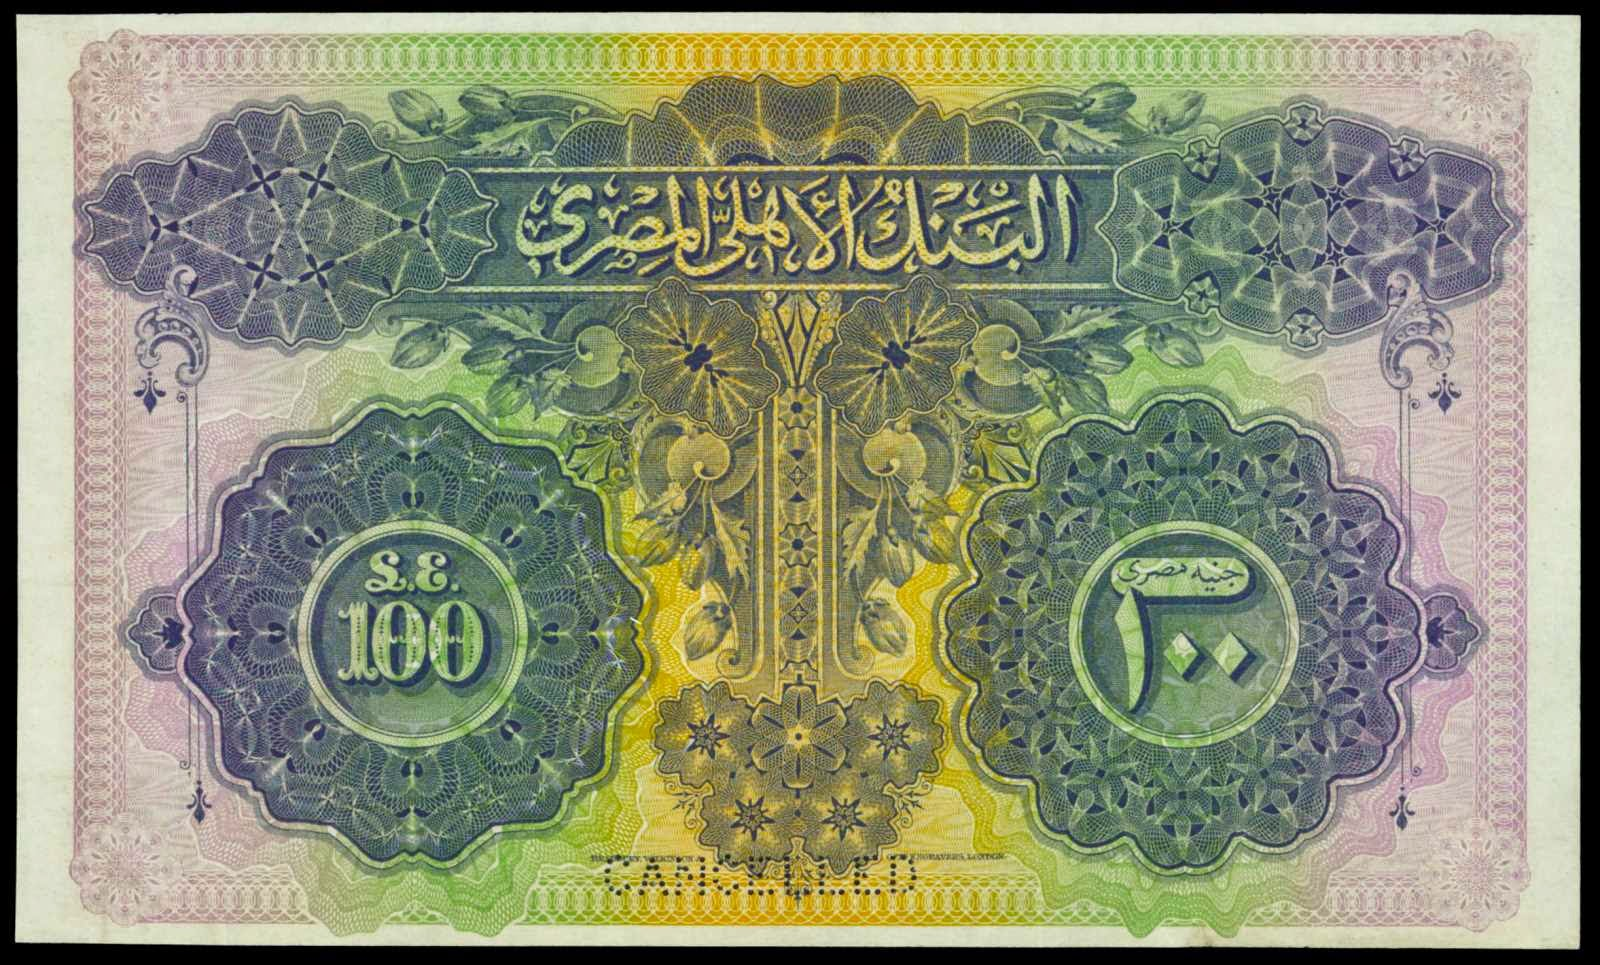 Egypt currency notes 100 Egyptian Pounds bill 1913